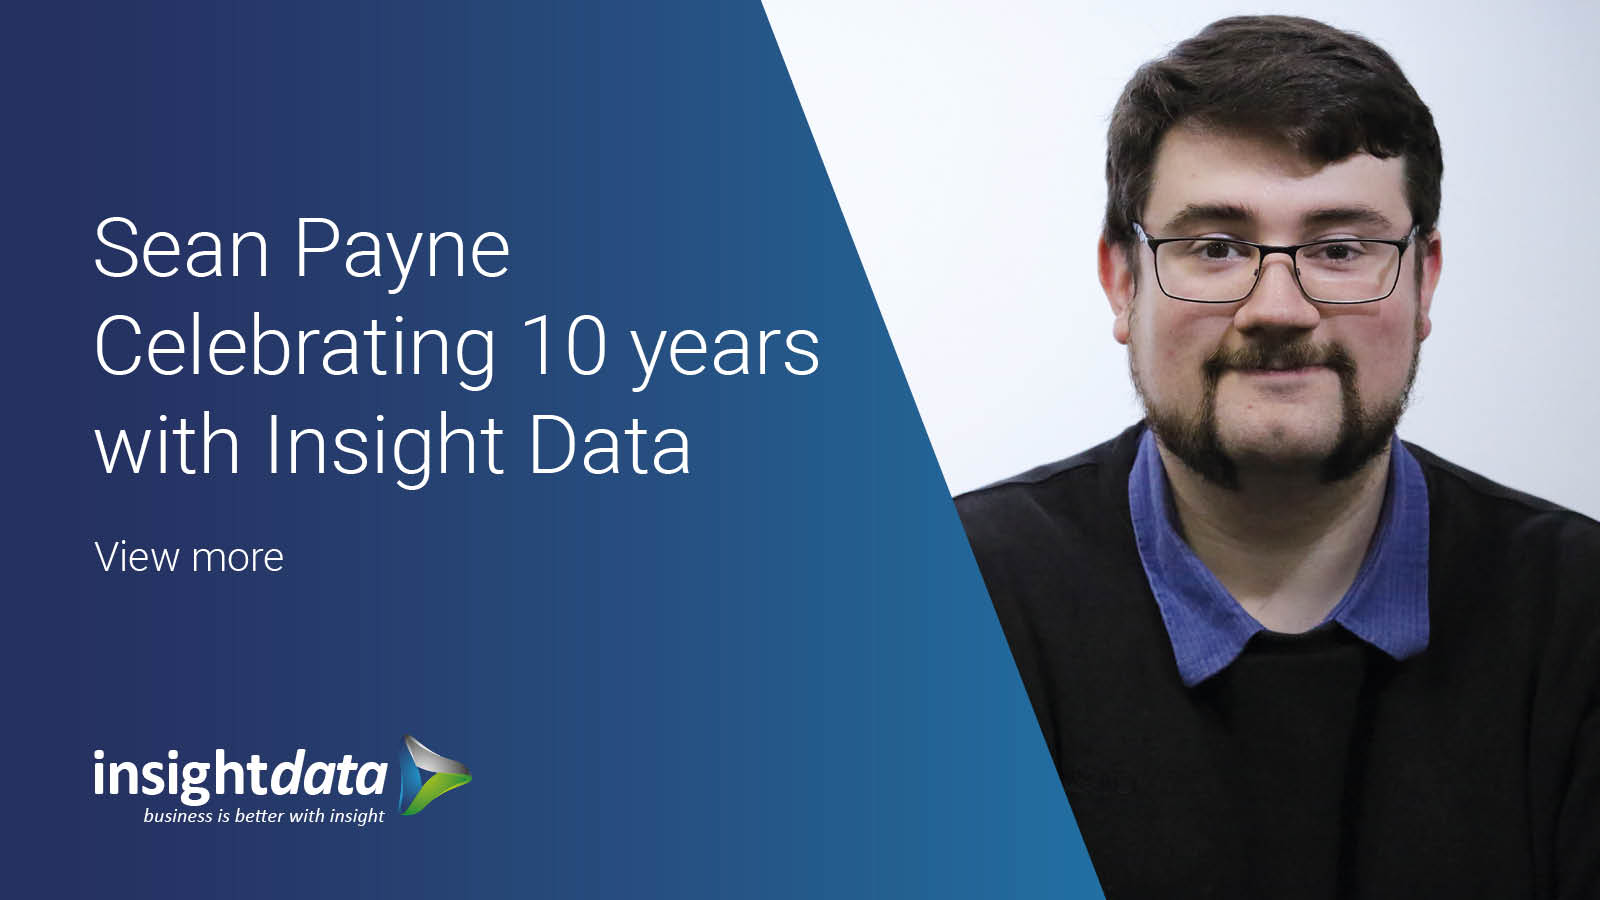 SEAN PAYNE CELEBRATING 10 YEARS WITH INSIGHT DATA